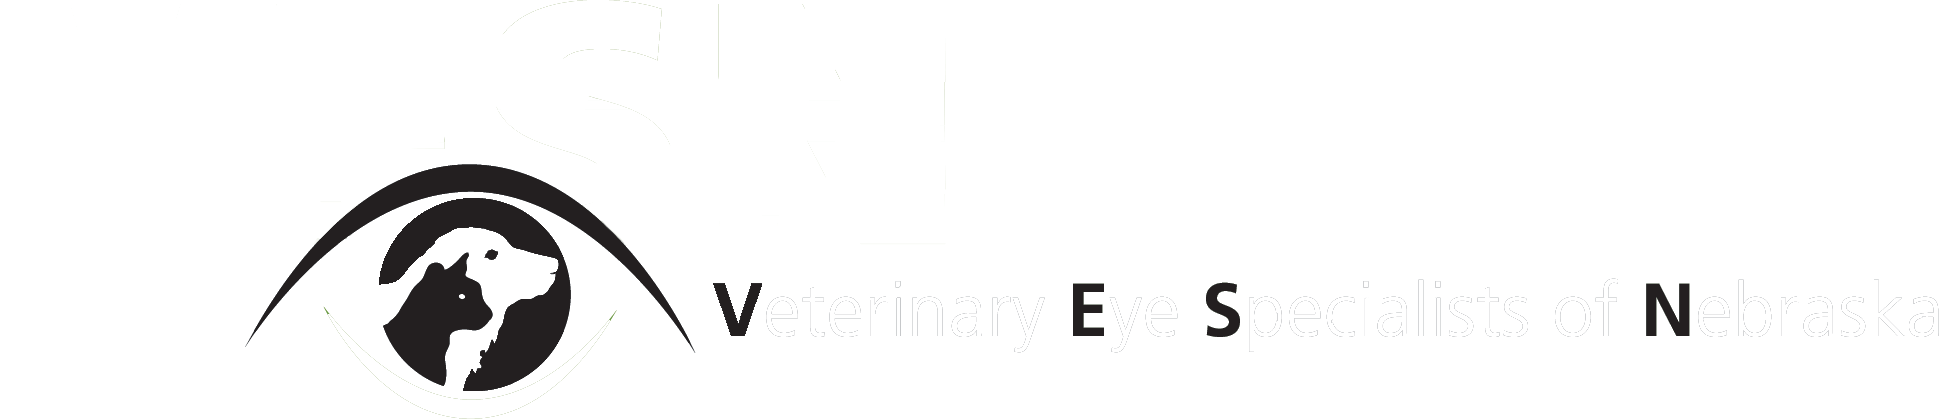 Veterinary Eye Specialists of Nebraska